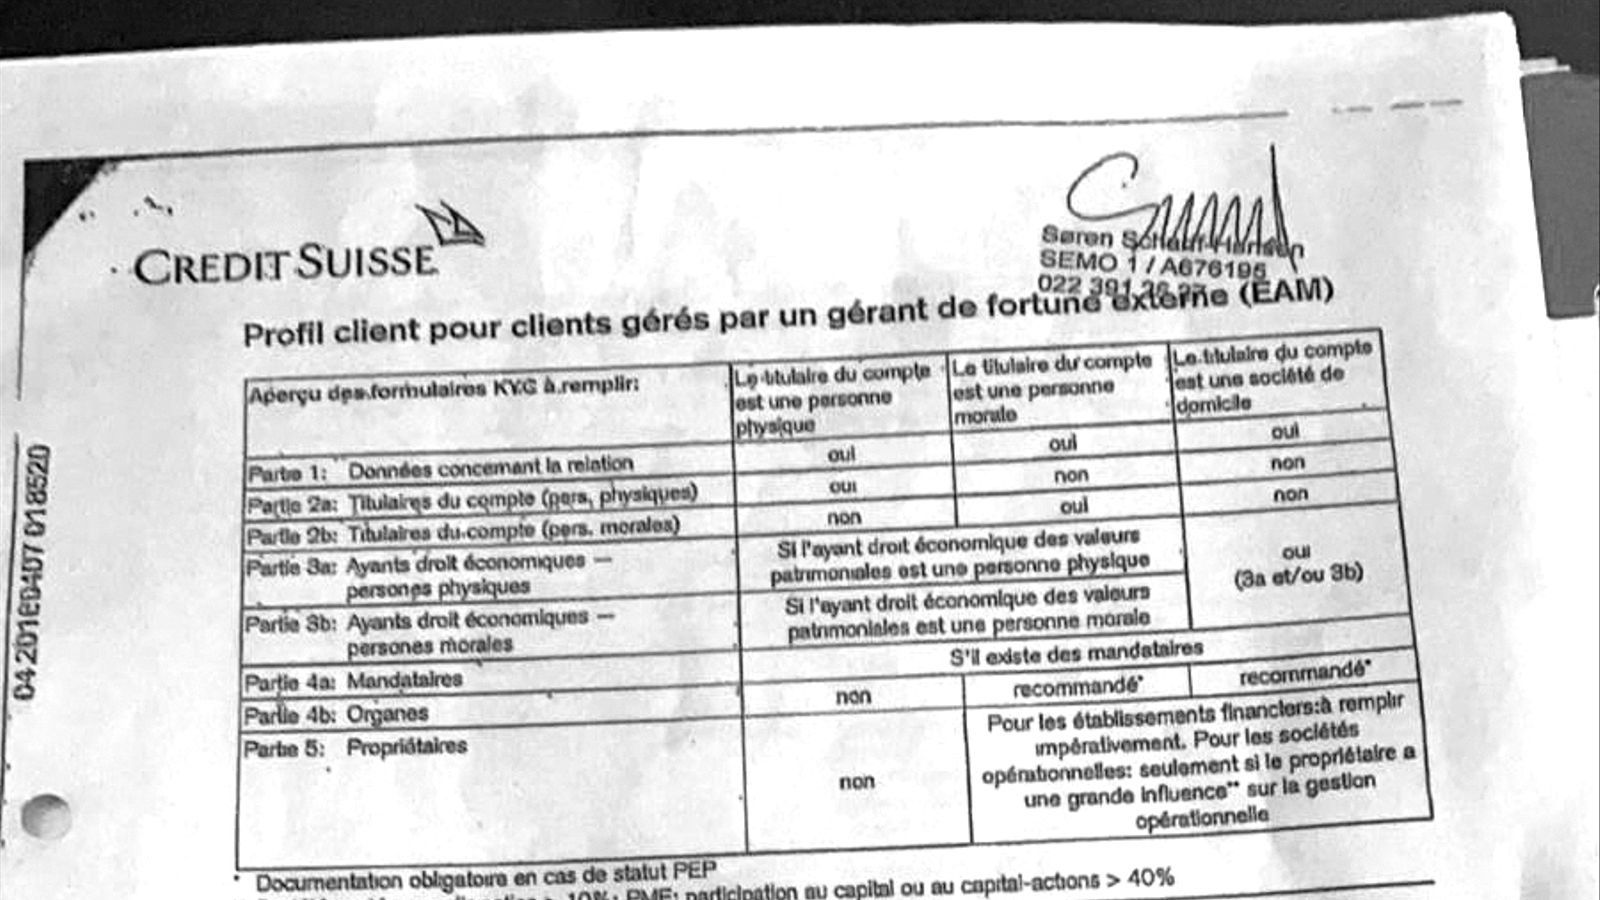 Document de Credit Suisse